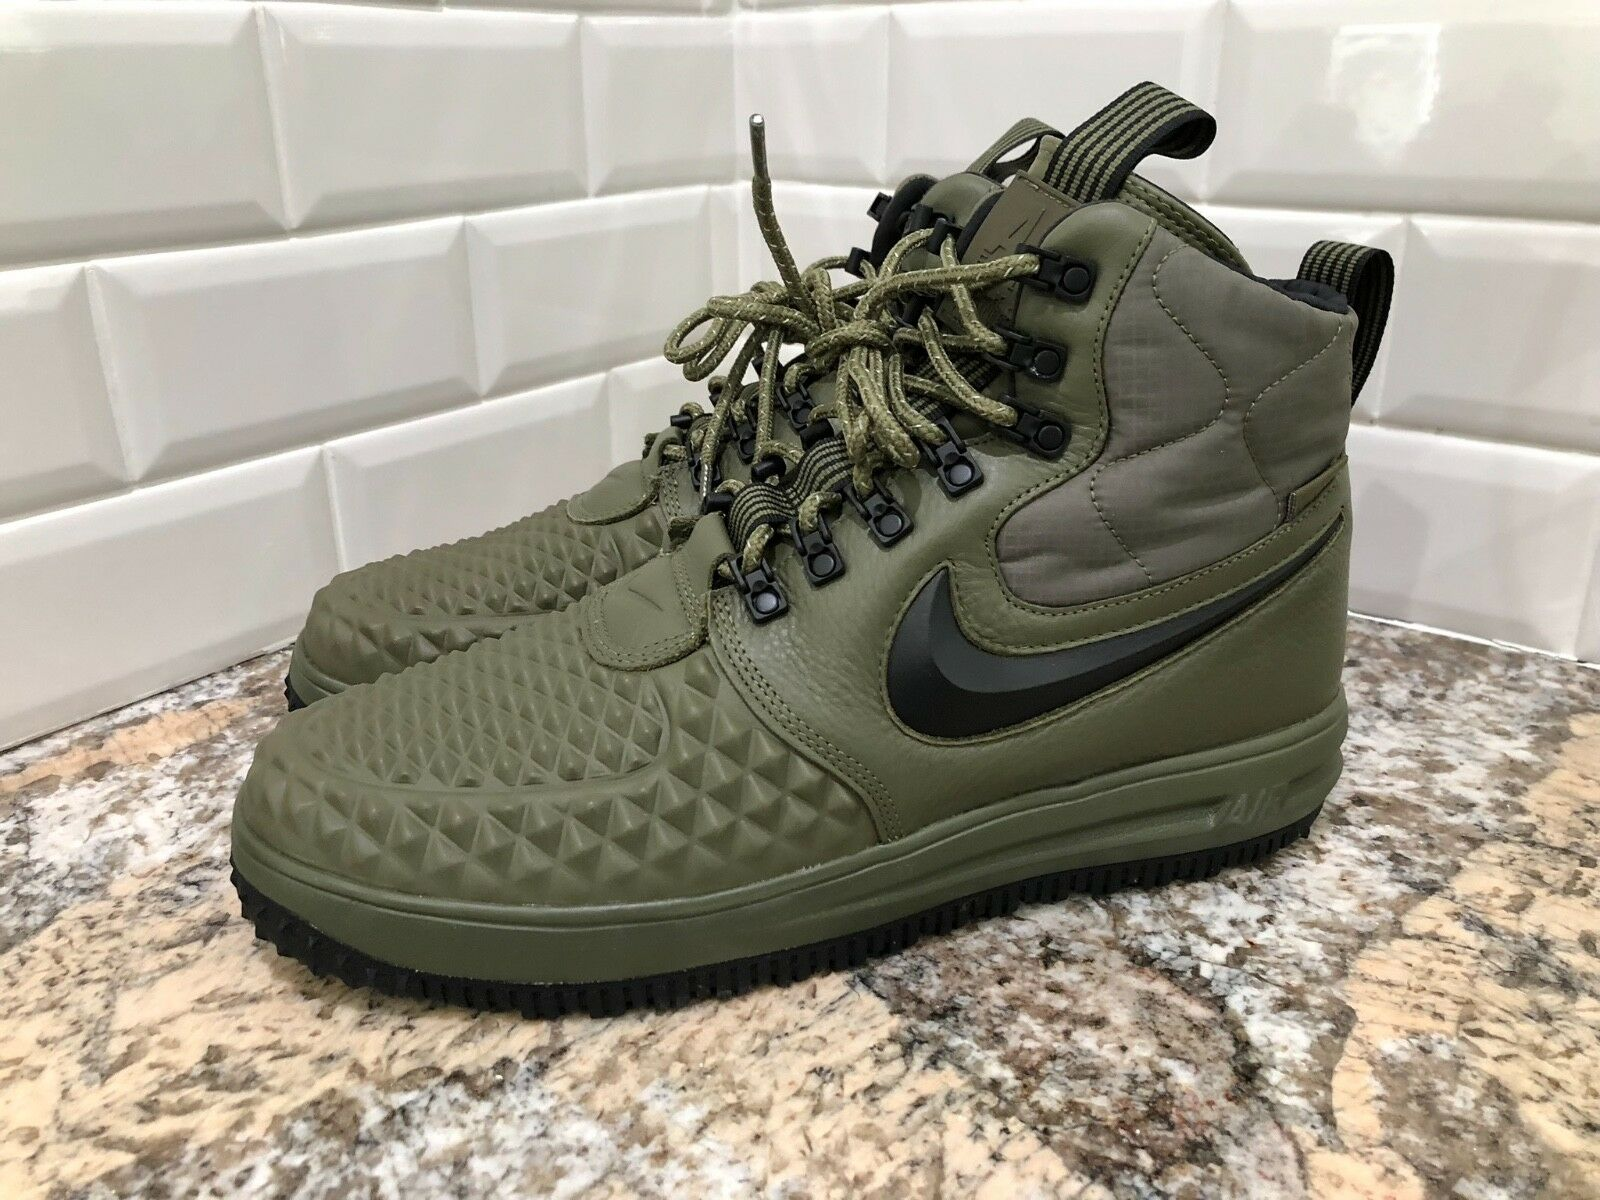 Nike air force 1 duckboot 17 lunare medio verde oliva lf1 916682-202 sz - 9